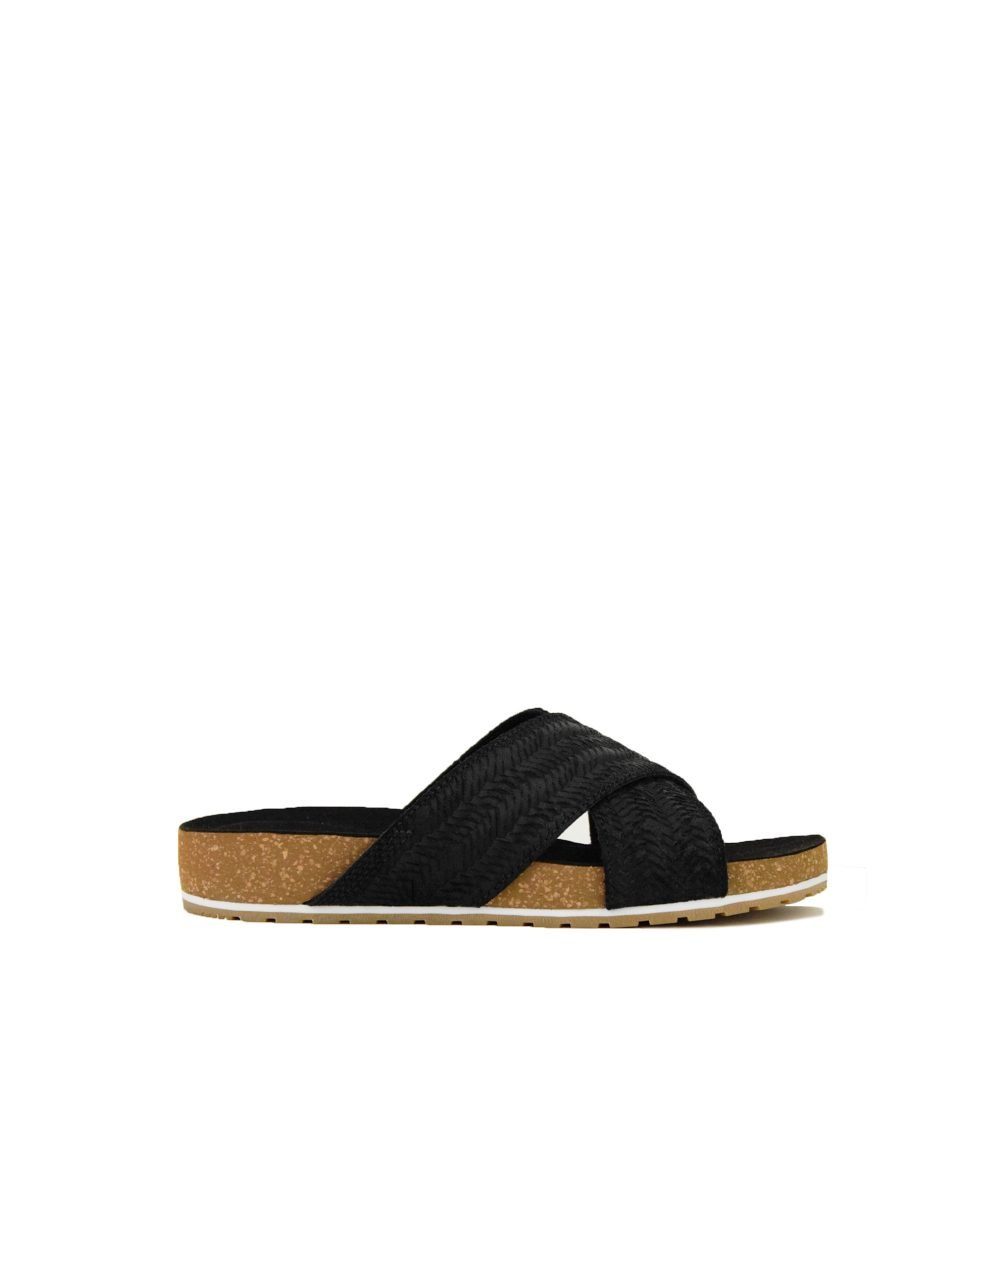 Timberland Malibu Waves Cross Slide (TB0A1XXF-015) Black Embossed Suede